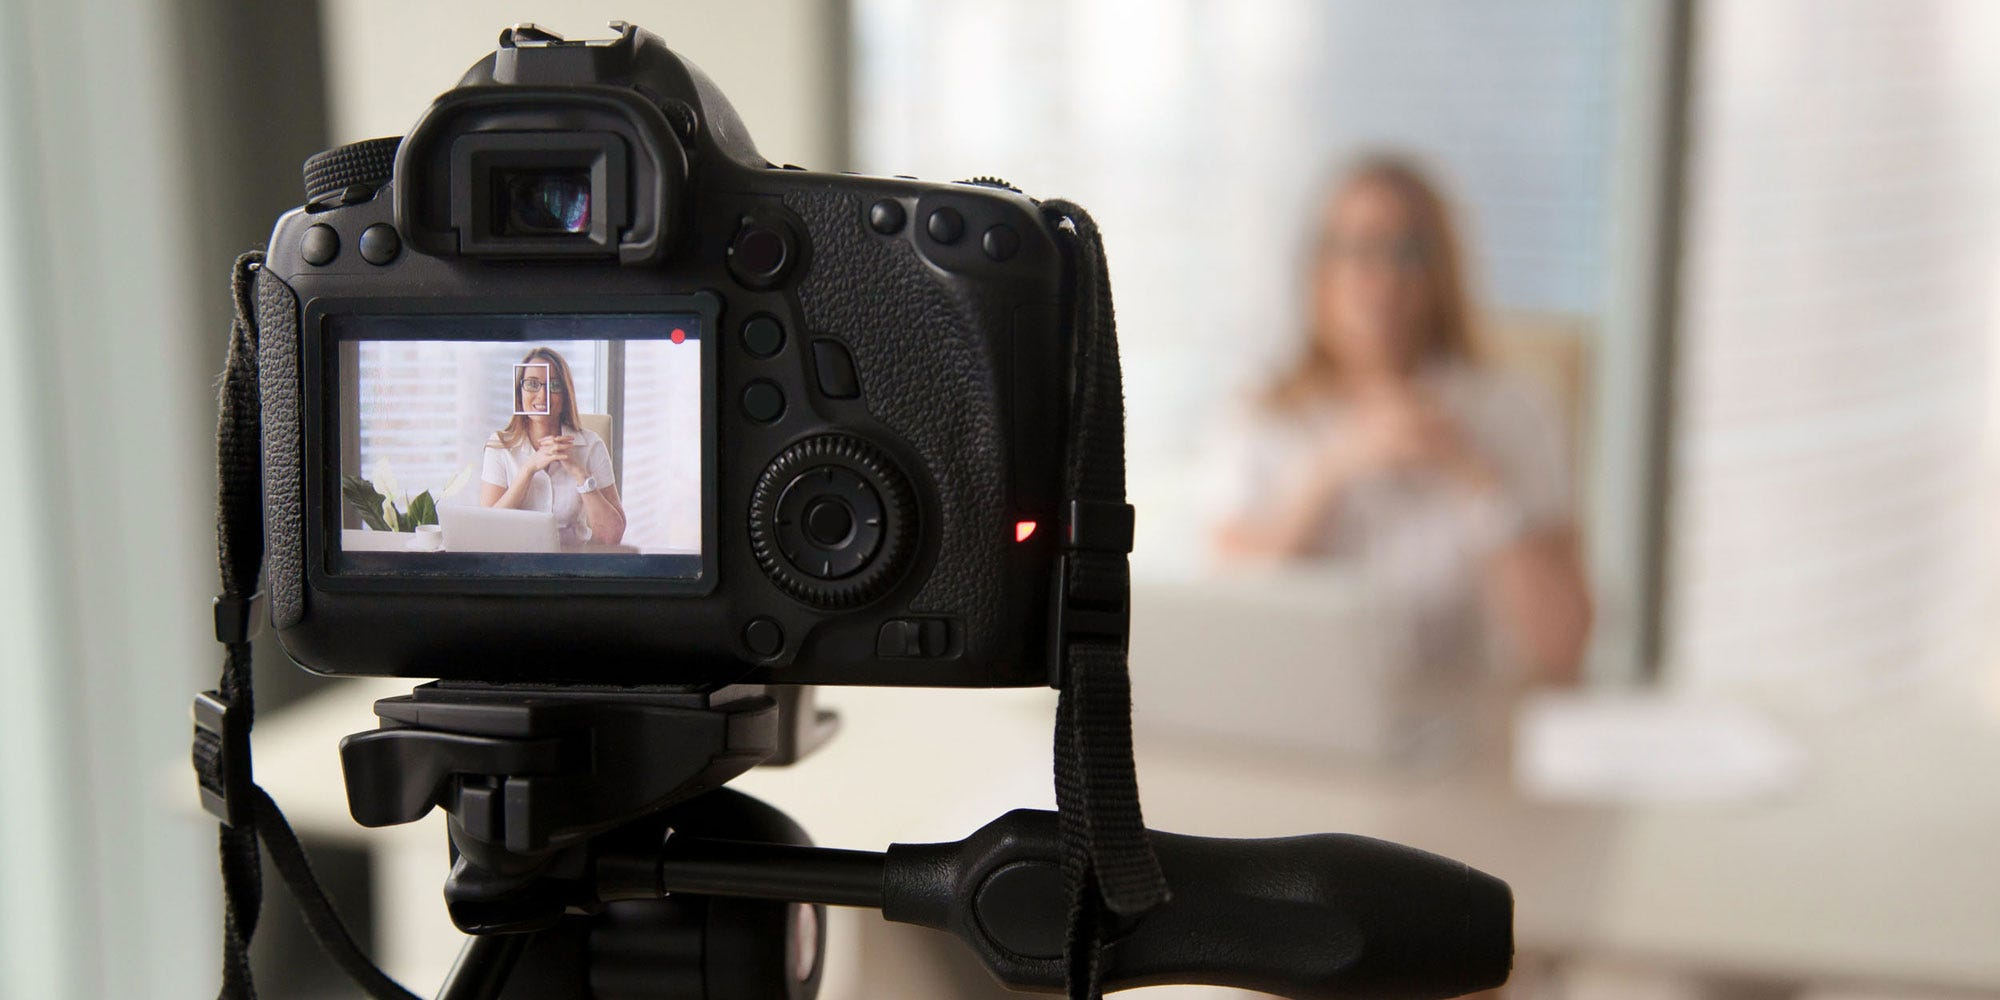 DSLR camera recording woman with blurred background